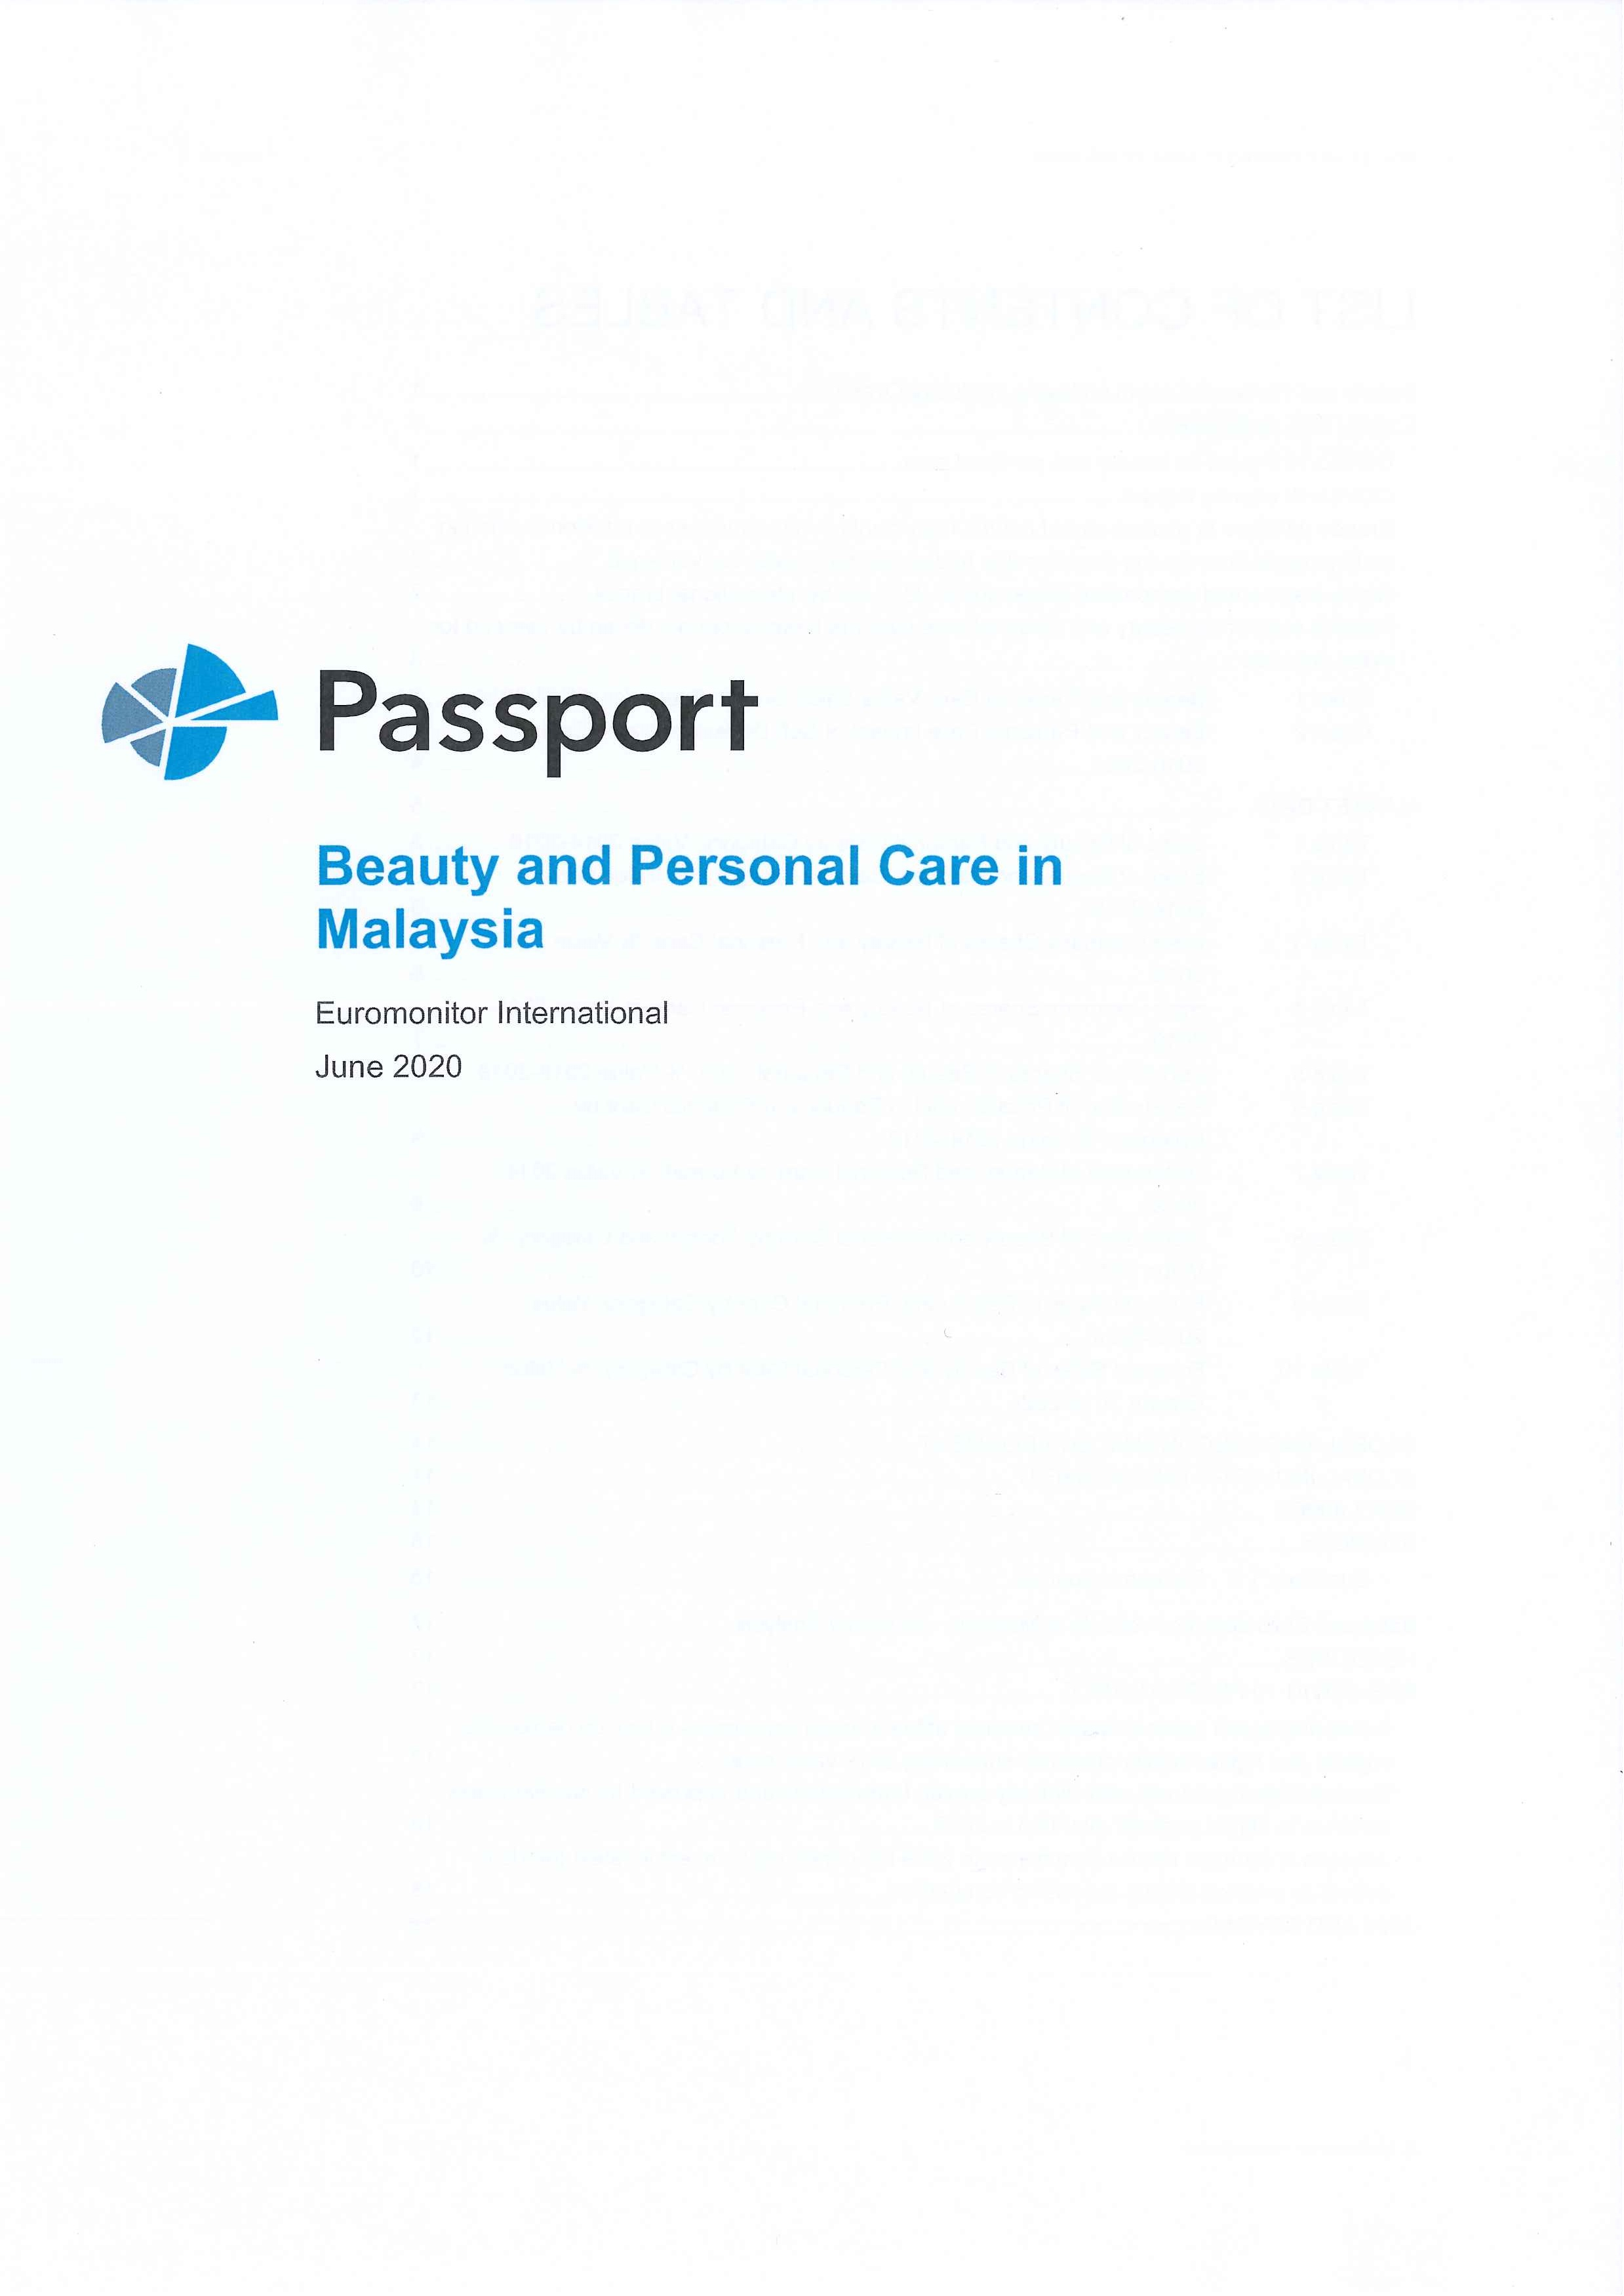 Beauty and personal care in Malaysia [e-book]